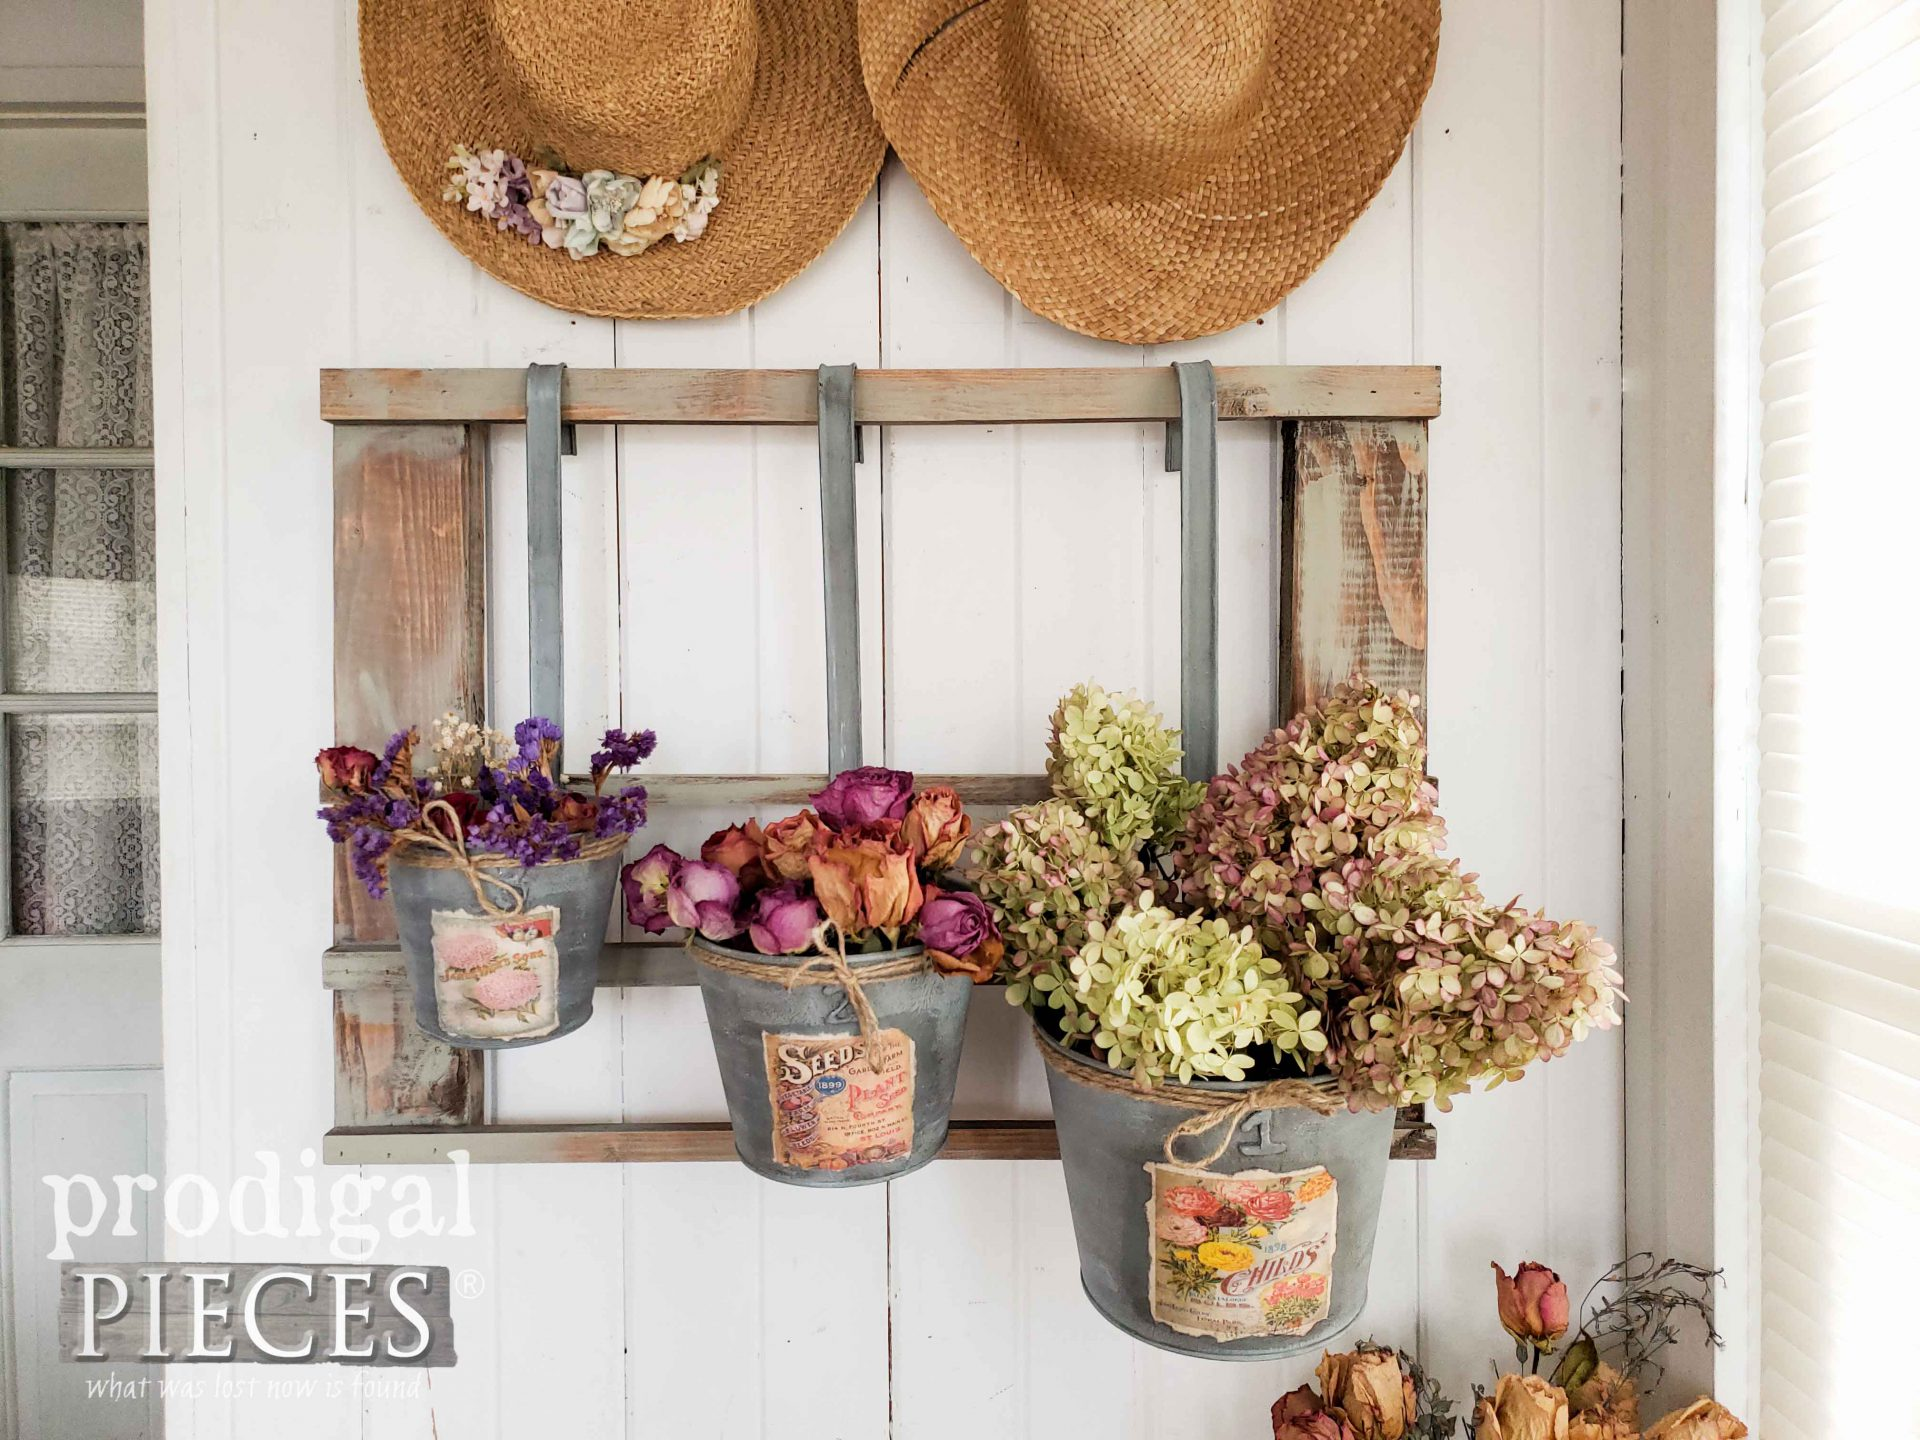 Upcycled Thrifted Finds Made into Farmhouse Decor by Larissa of Prodigal Pieces | prodigalpieces.com #prodigalpieces #diy #upcycled #home #cottage #farmhouse #homedecor